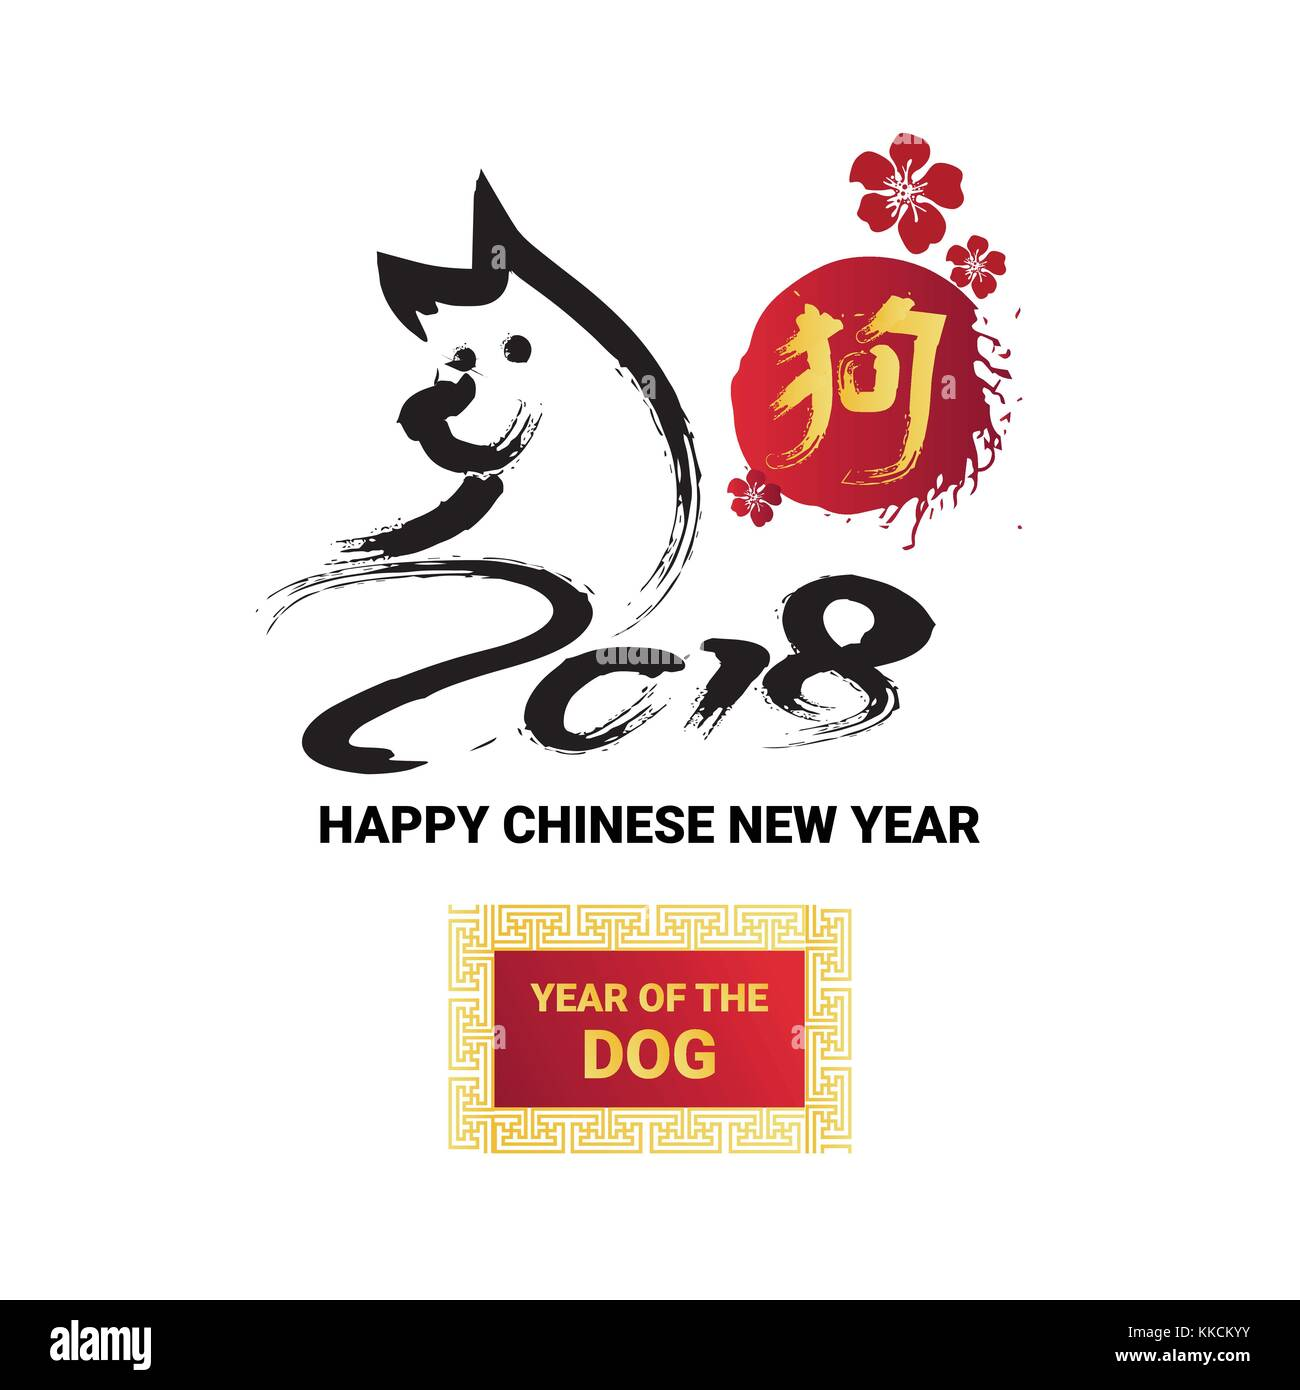 Paint brush of dog chinese new year 2018 lunar zodiac symbol stock paint brush of dog chinese new year 2018 lunar zodiac symbol buycottarizona Gallery